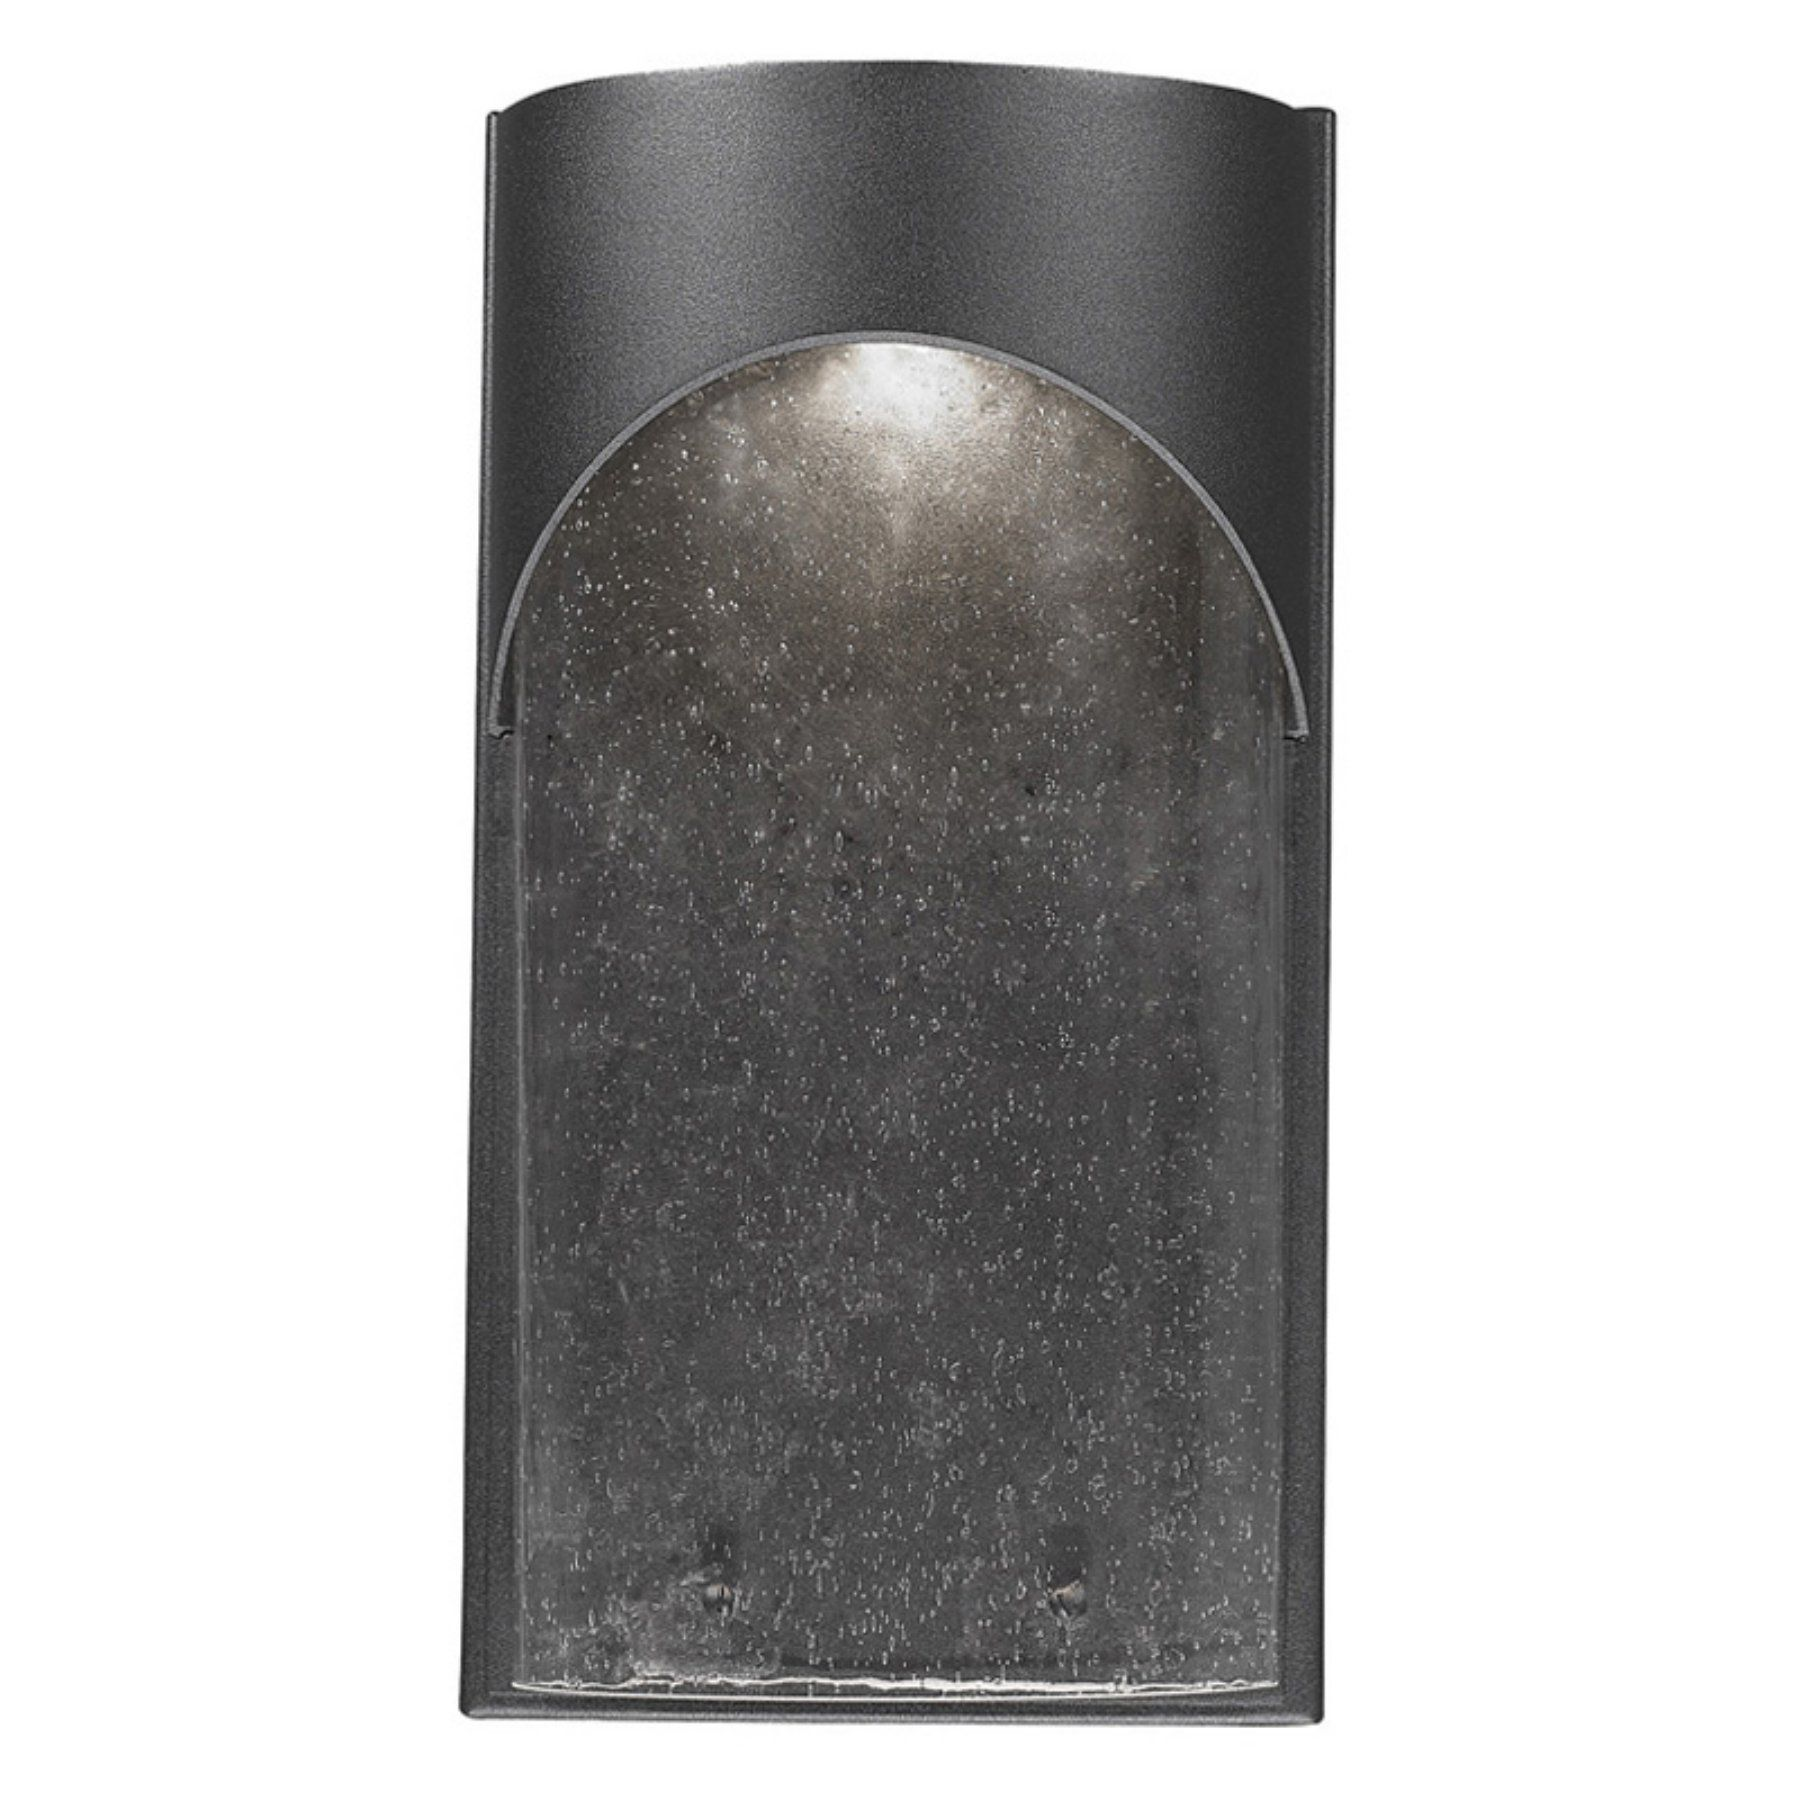 Artcraft Westbrook AC9036BK Wall Sconce - AC9036BK | Led ... on Wall Sconce Replacement Parts id=27355